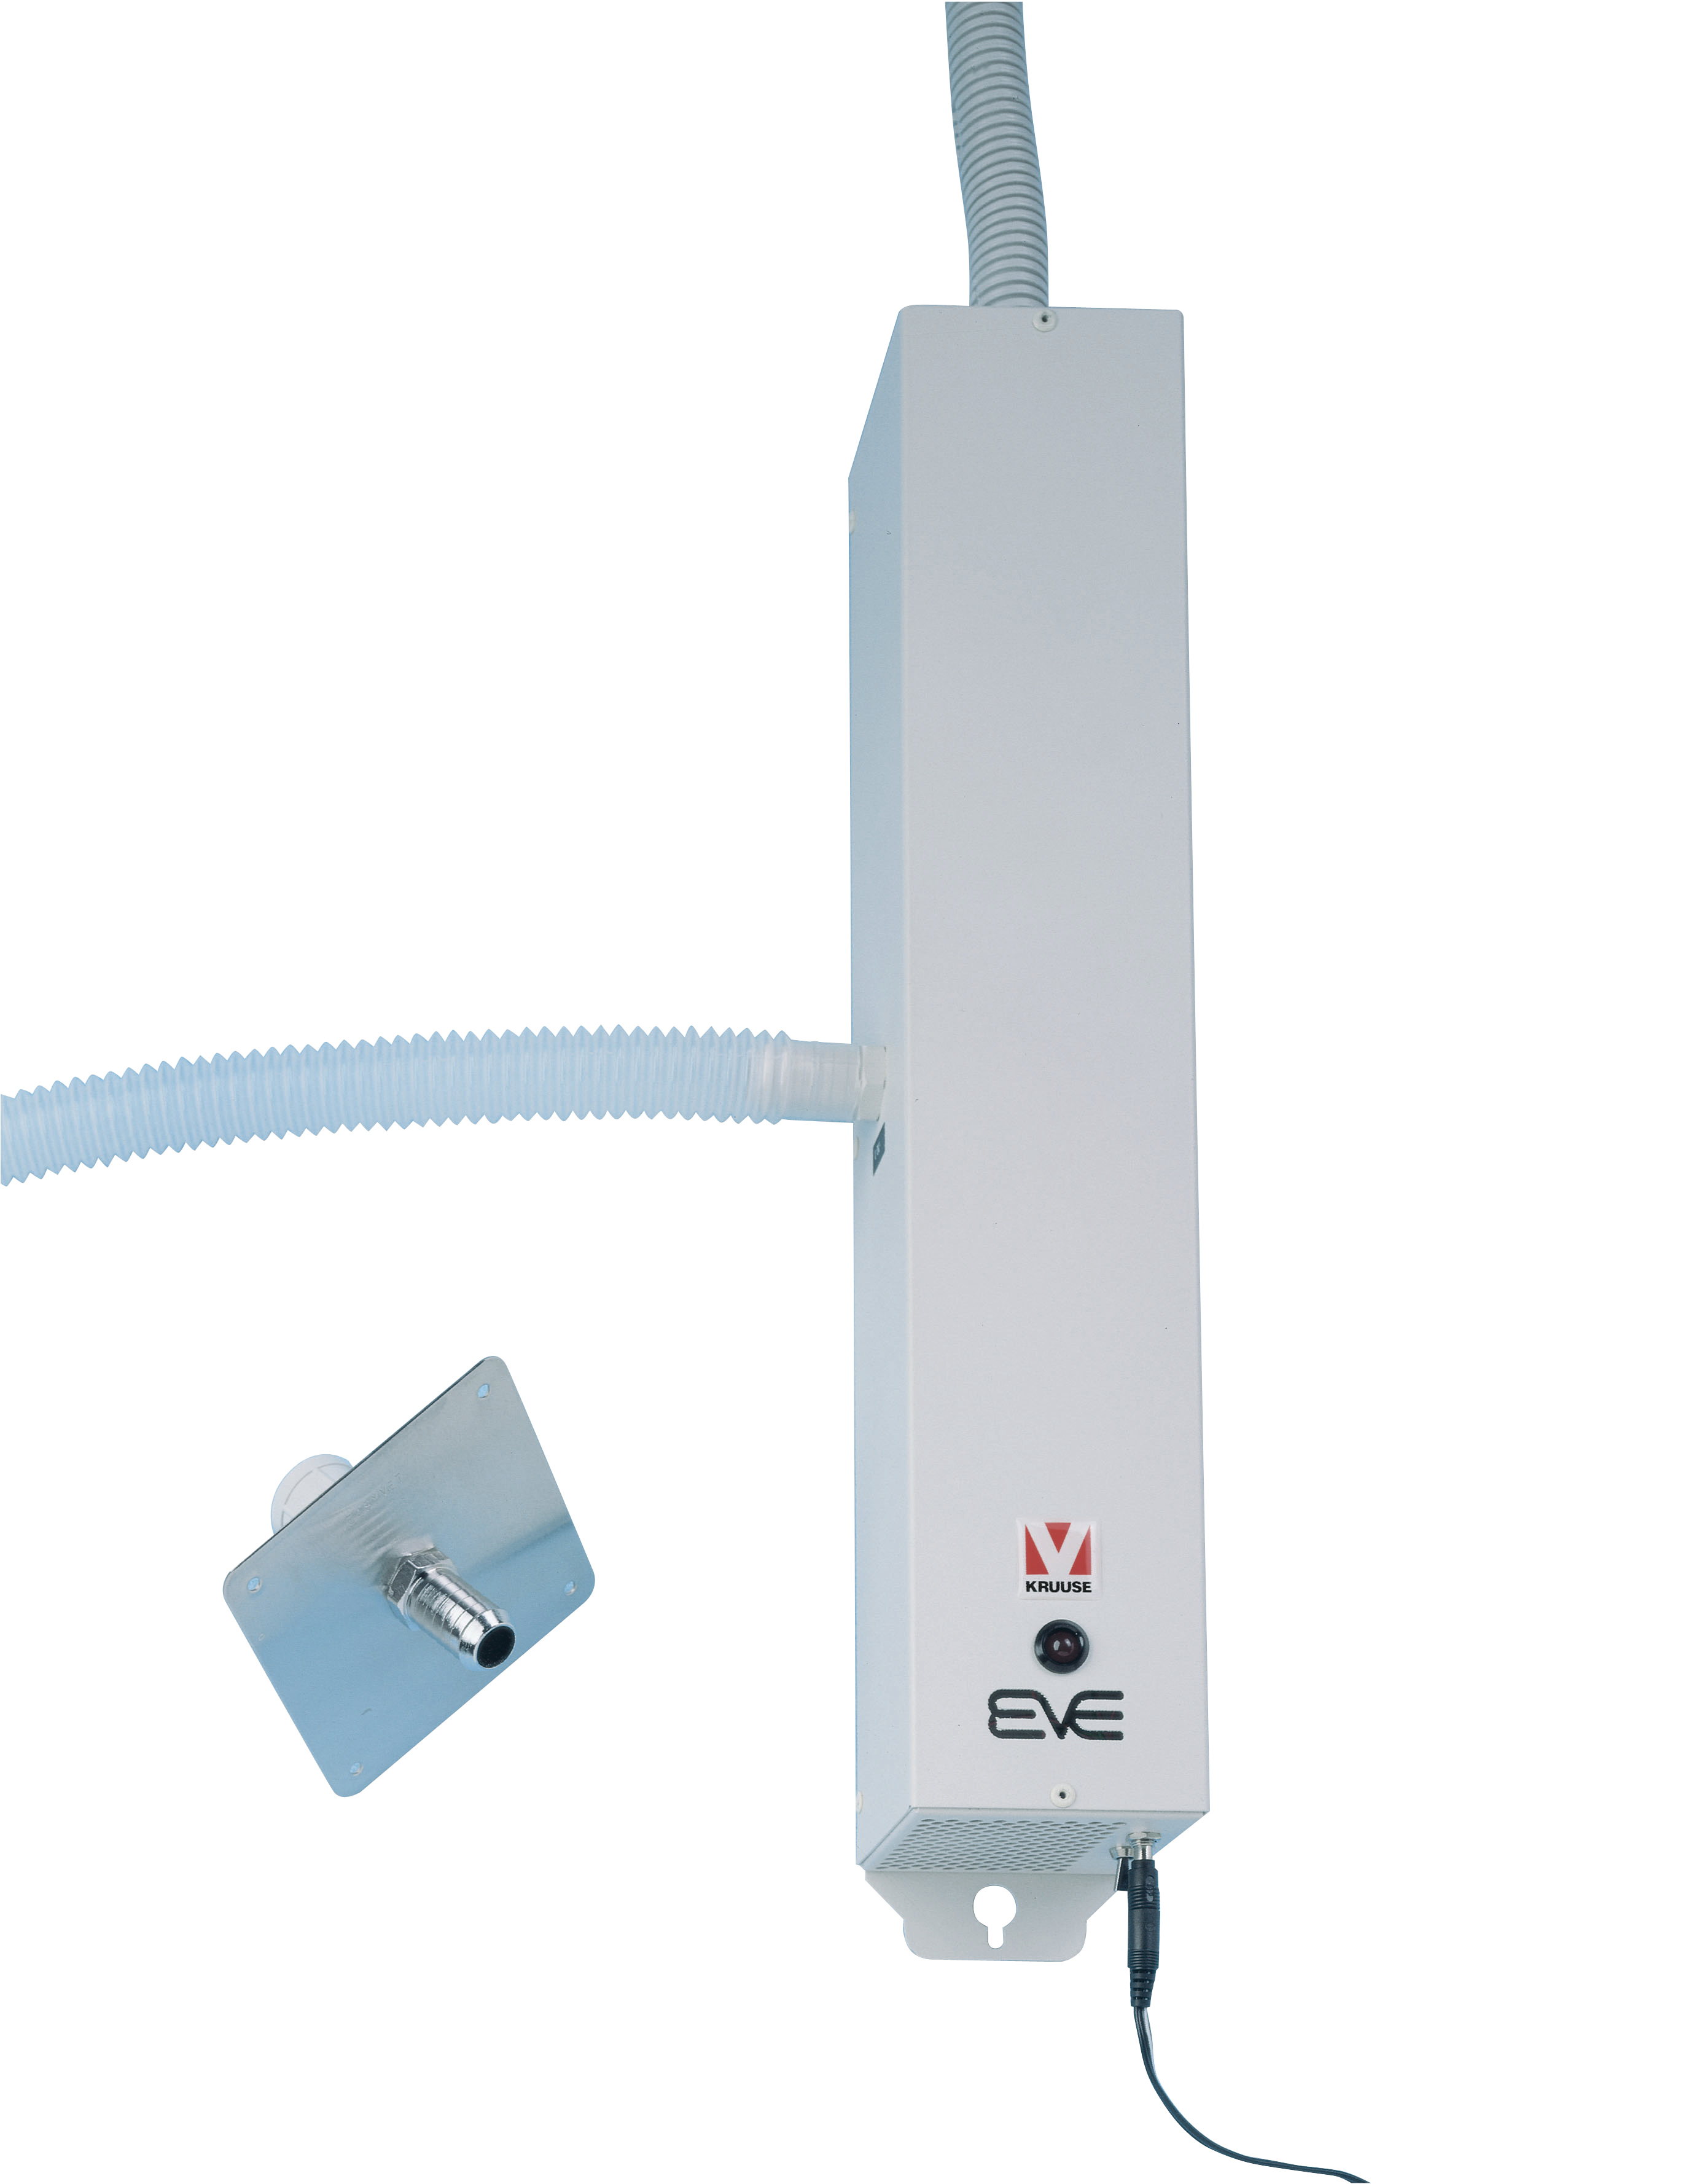 EVE Active Anaesthetic Gas Scavenge System, complete kit with tubes